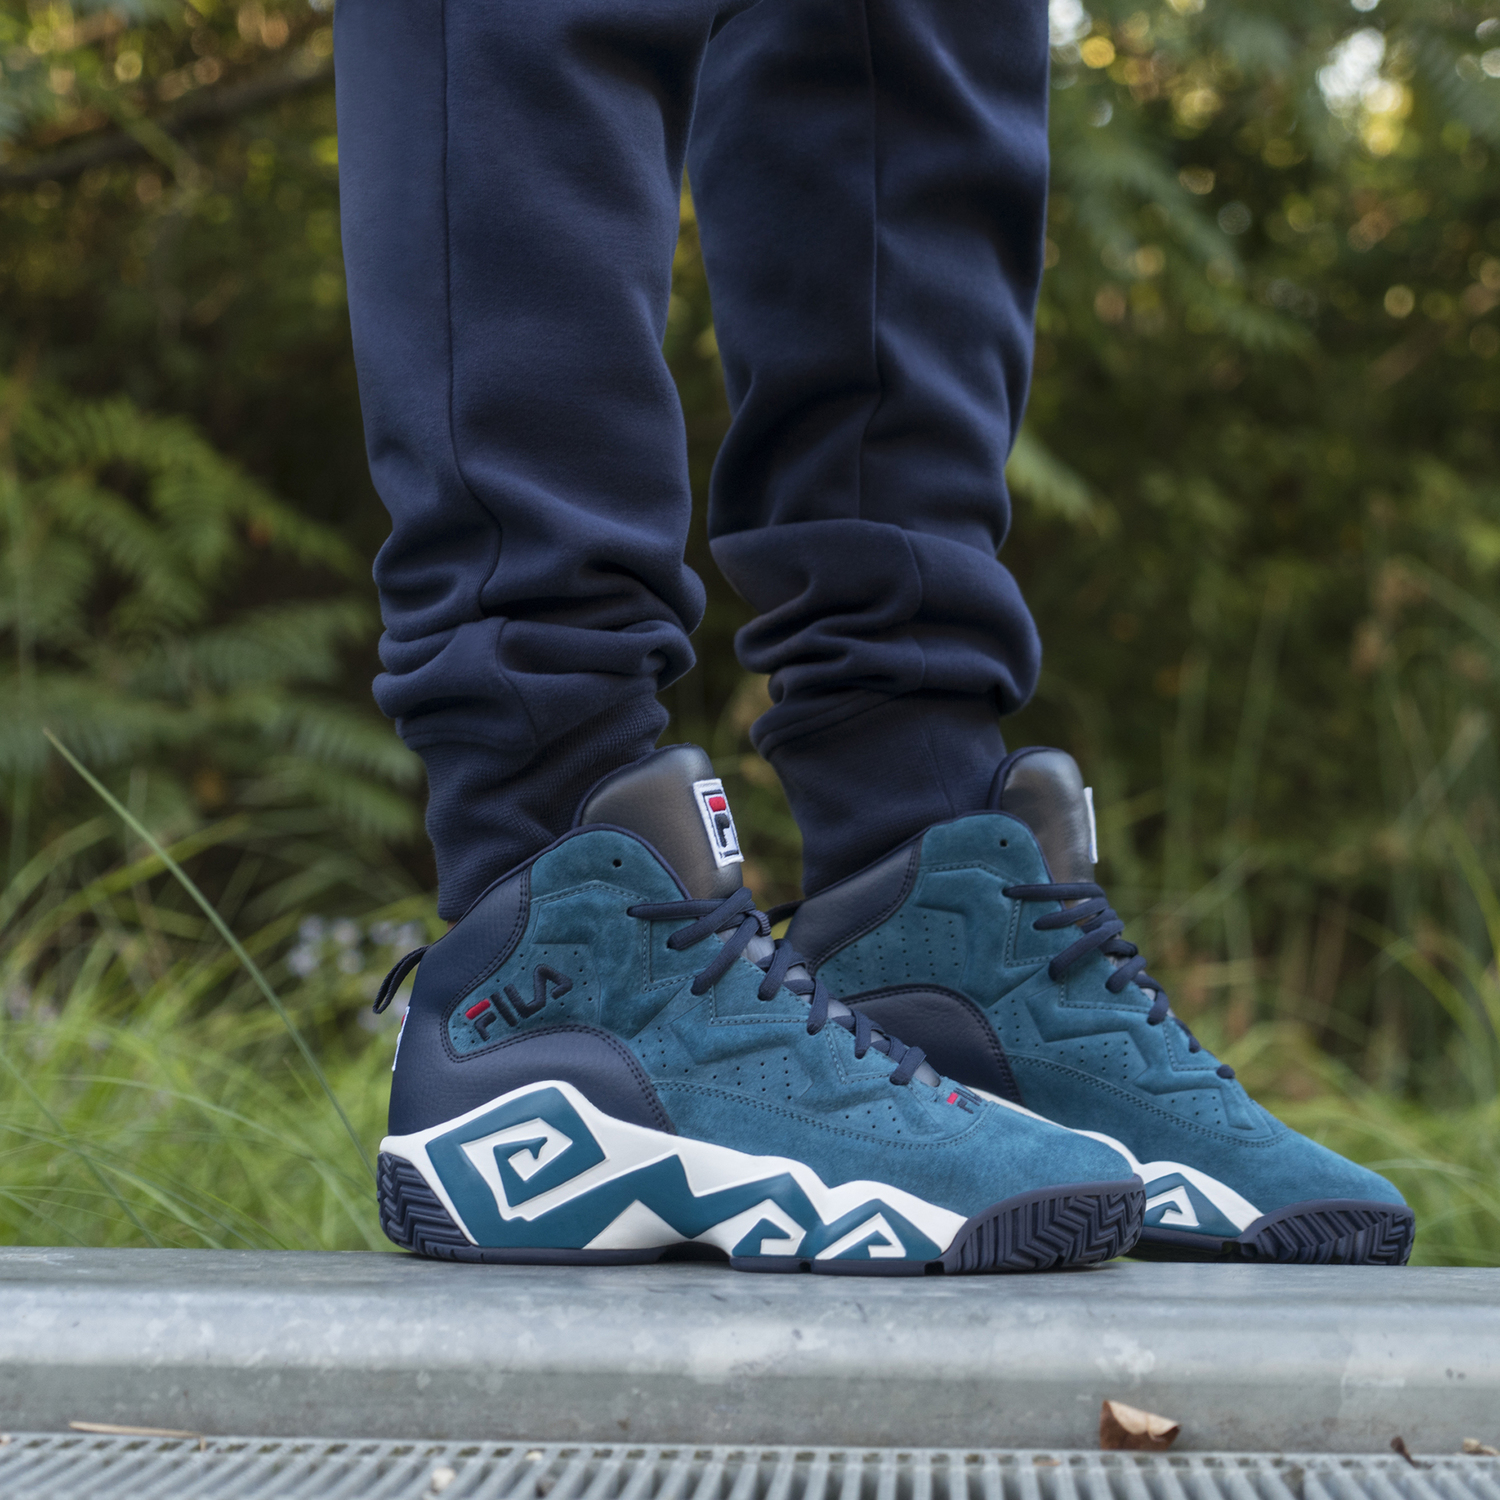 FILA MB all conference pack